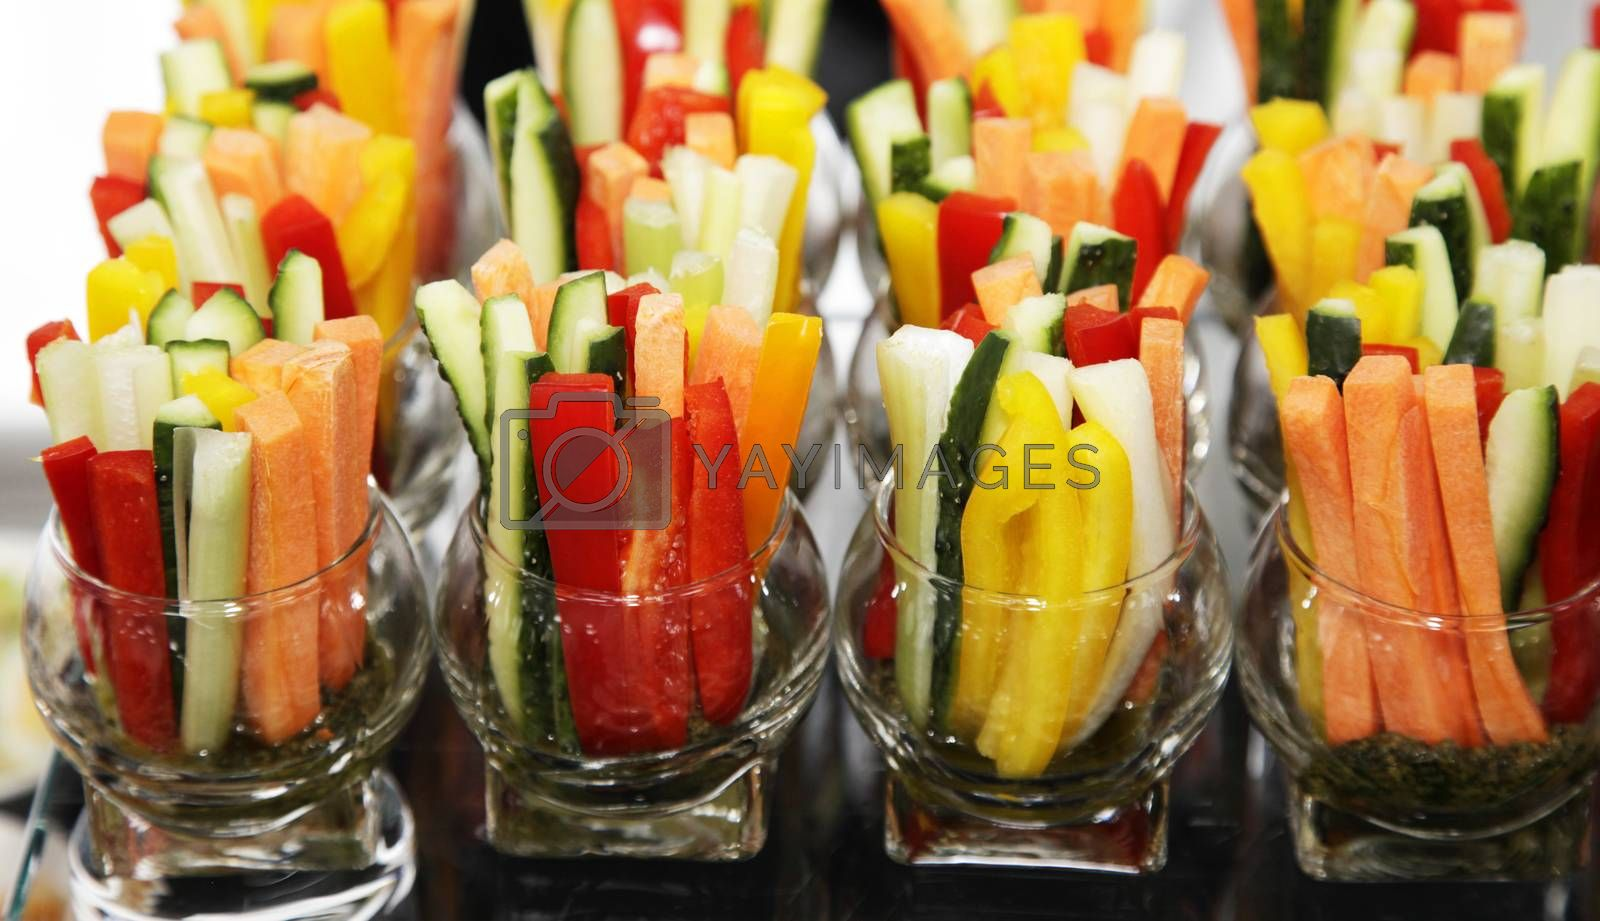 transparent glass with slices of fresh vegetables